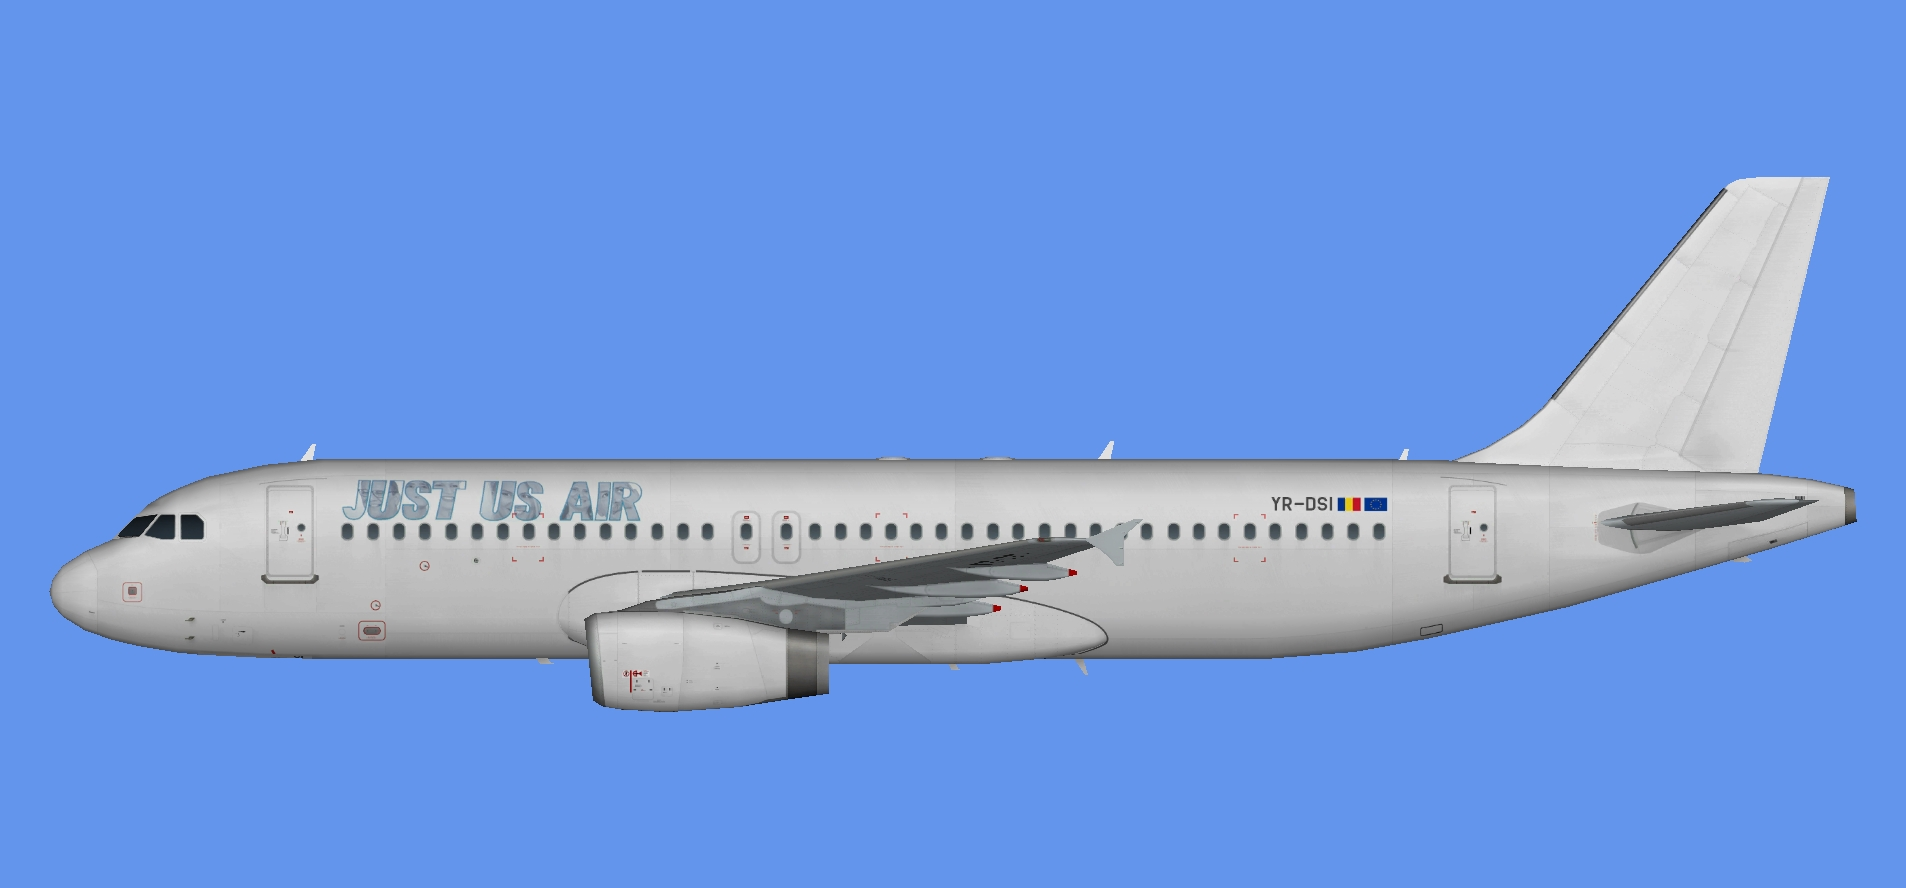 Just-Us Air Airbus A320